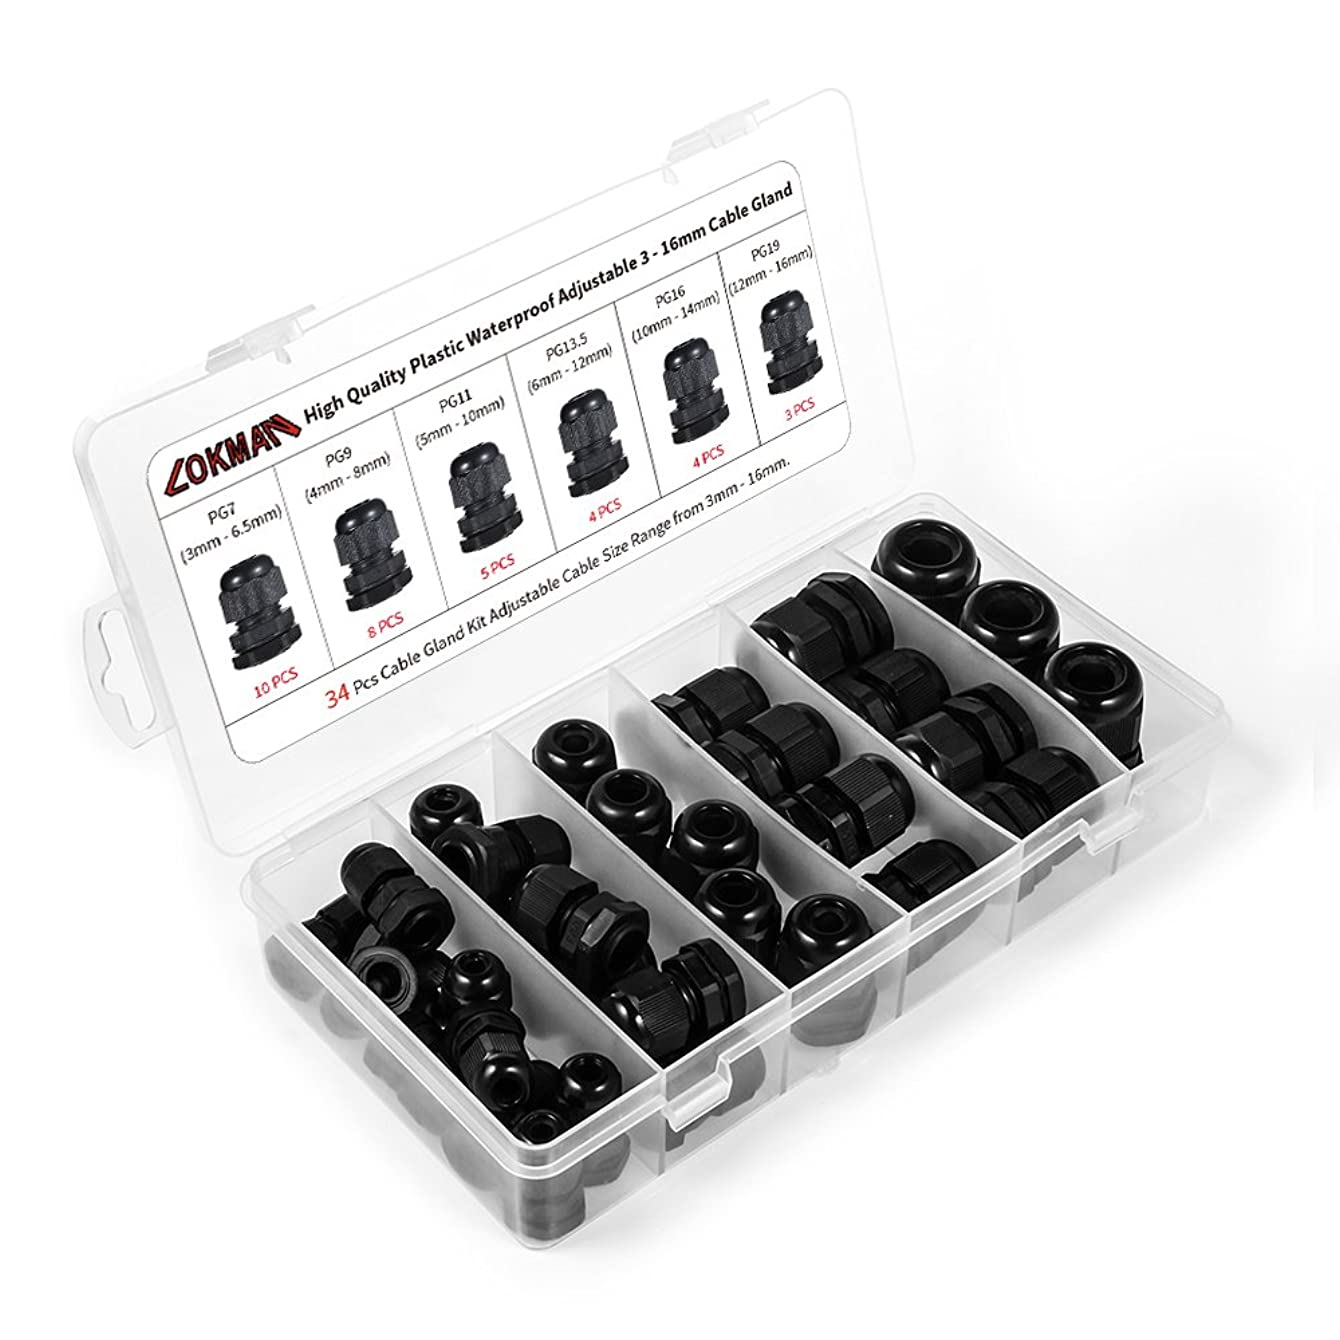 Cable Gland -LOKMAN 34 Pack Plastic Waterproof Adjustable 3-16mm Cable Connectors Cable Gland Joints With Gaskets, PG7, PG9, PG11, PG13.5, PG16,PG19 With Durable PP Storage Case (Cable gland kit)